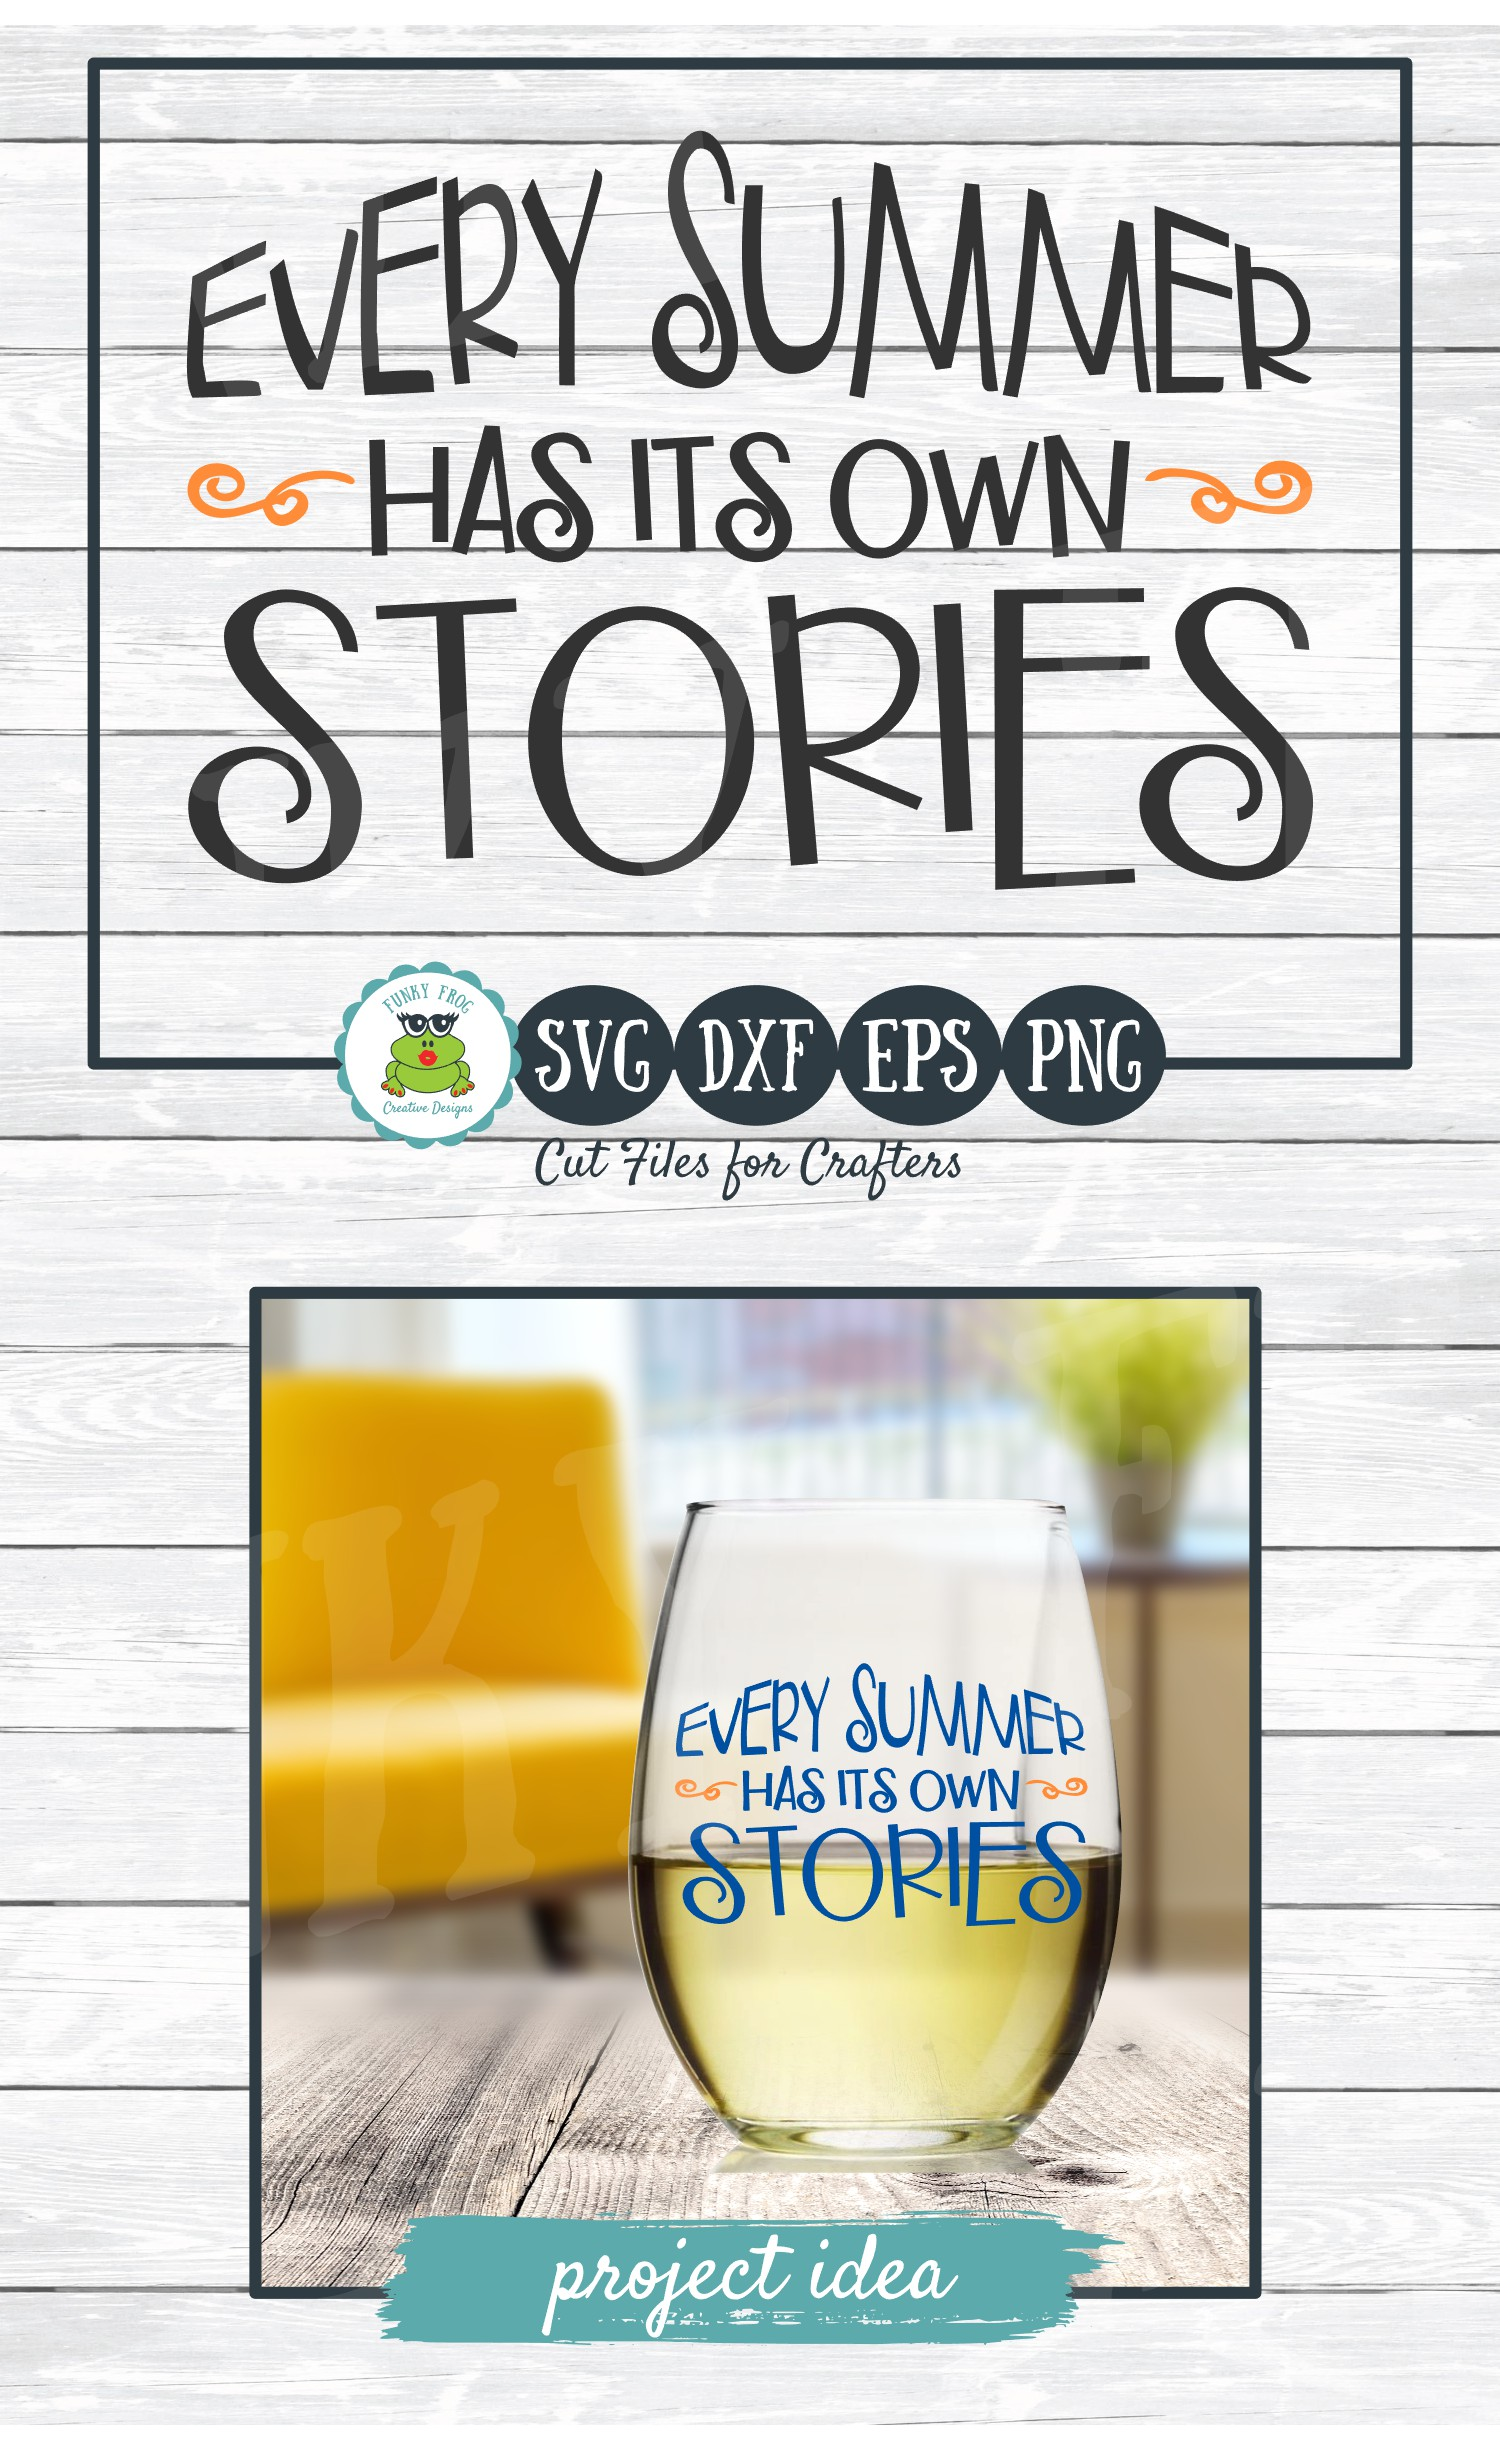 Every Summer Has Its Own Stories, SVG Cut File for Crafters example image 4